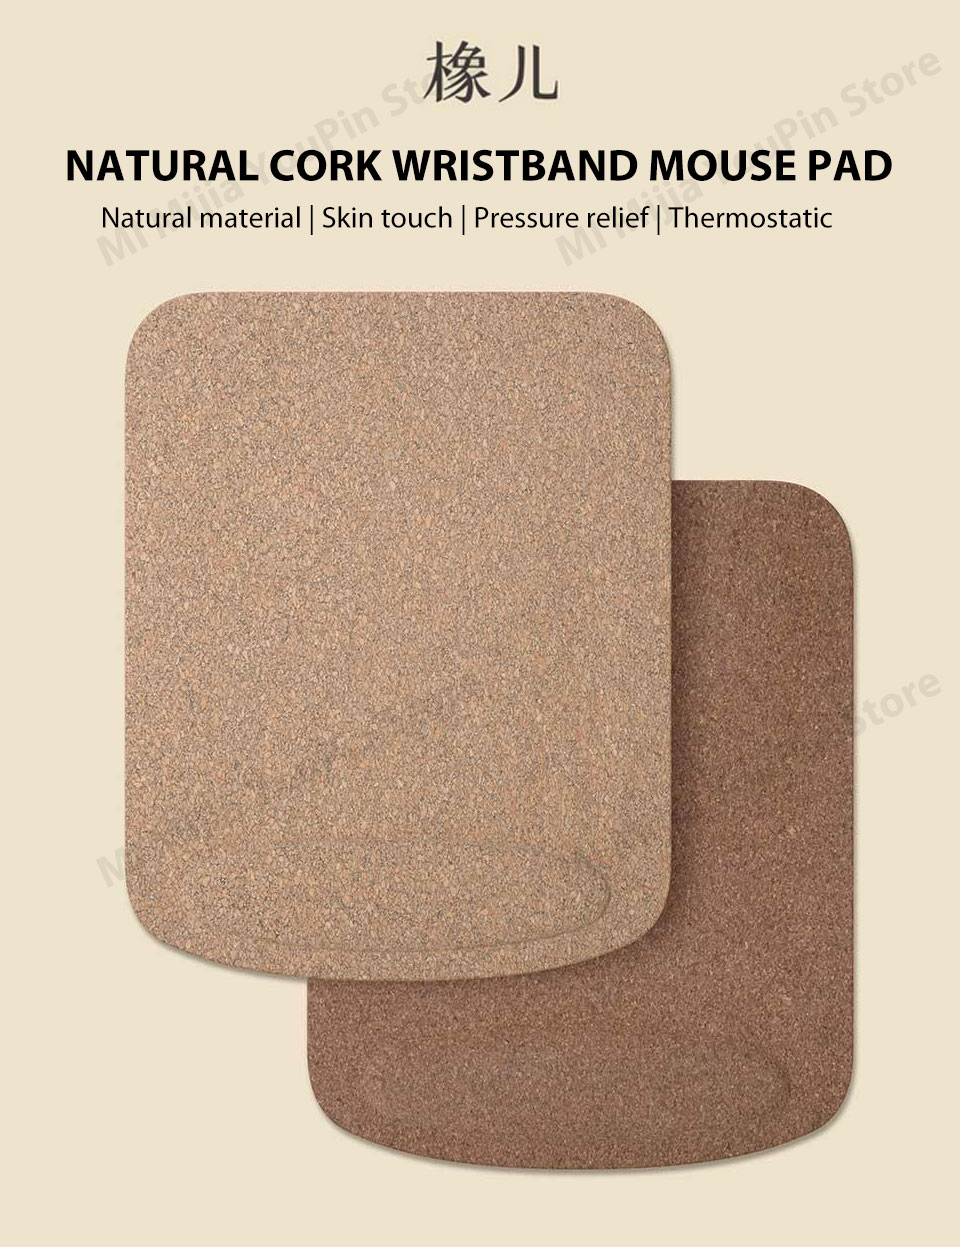 Xiaomi Youpin Mouse Pad Waterproof Skin Friendly Oak Coating Ergonomic Mouse Mat With Wrist Rest For Wired Wireless Gaming Mouse (1)